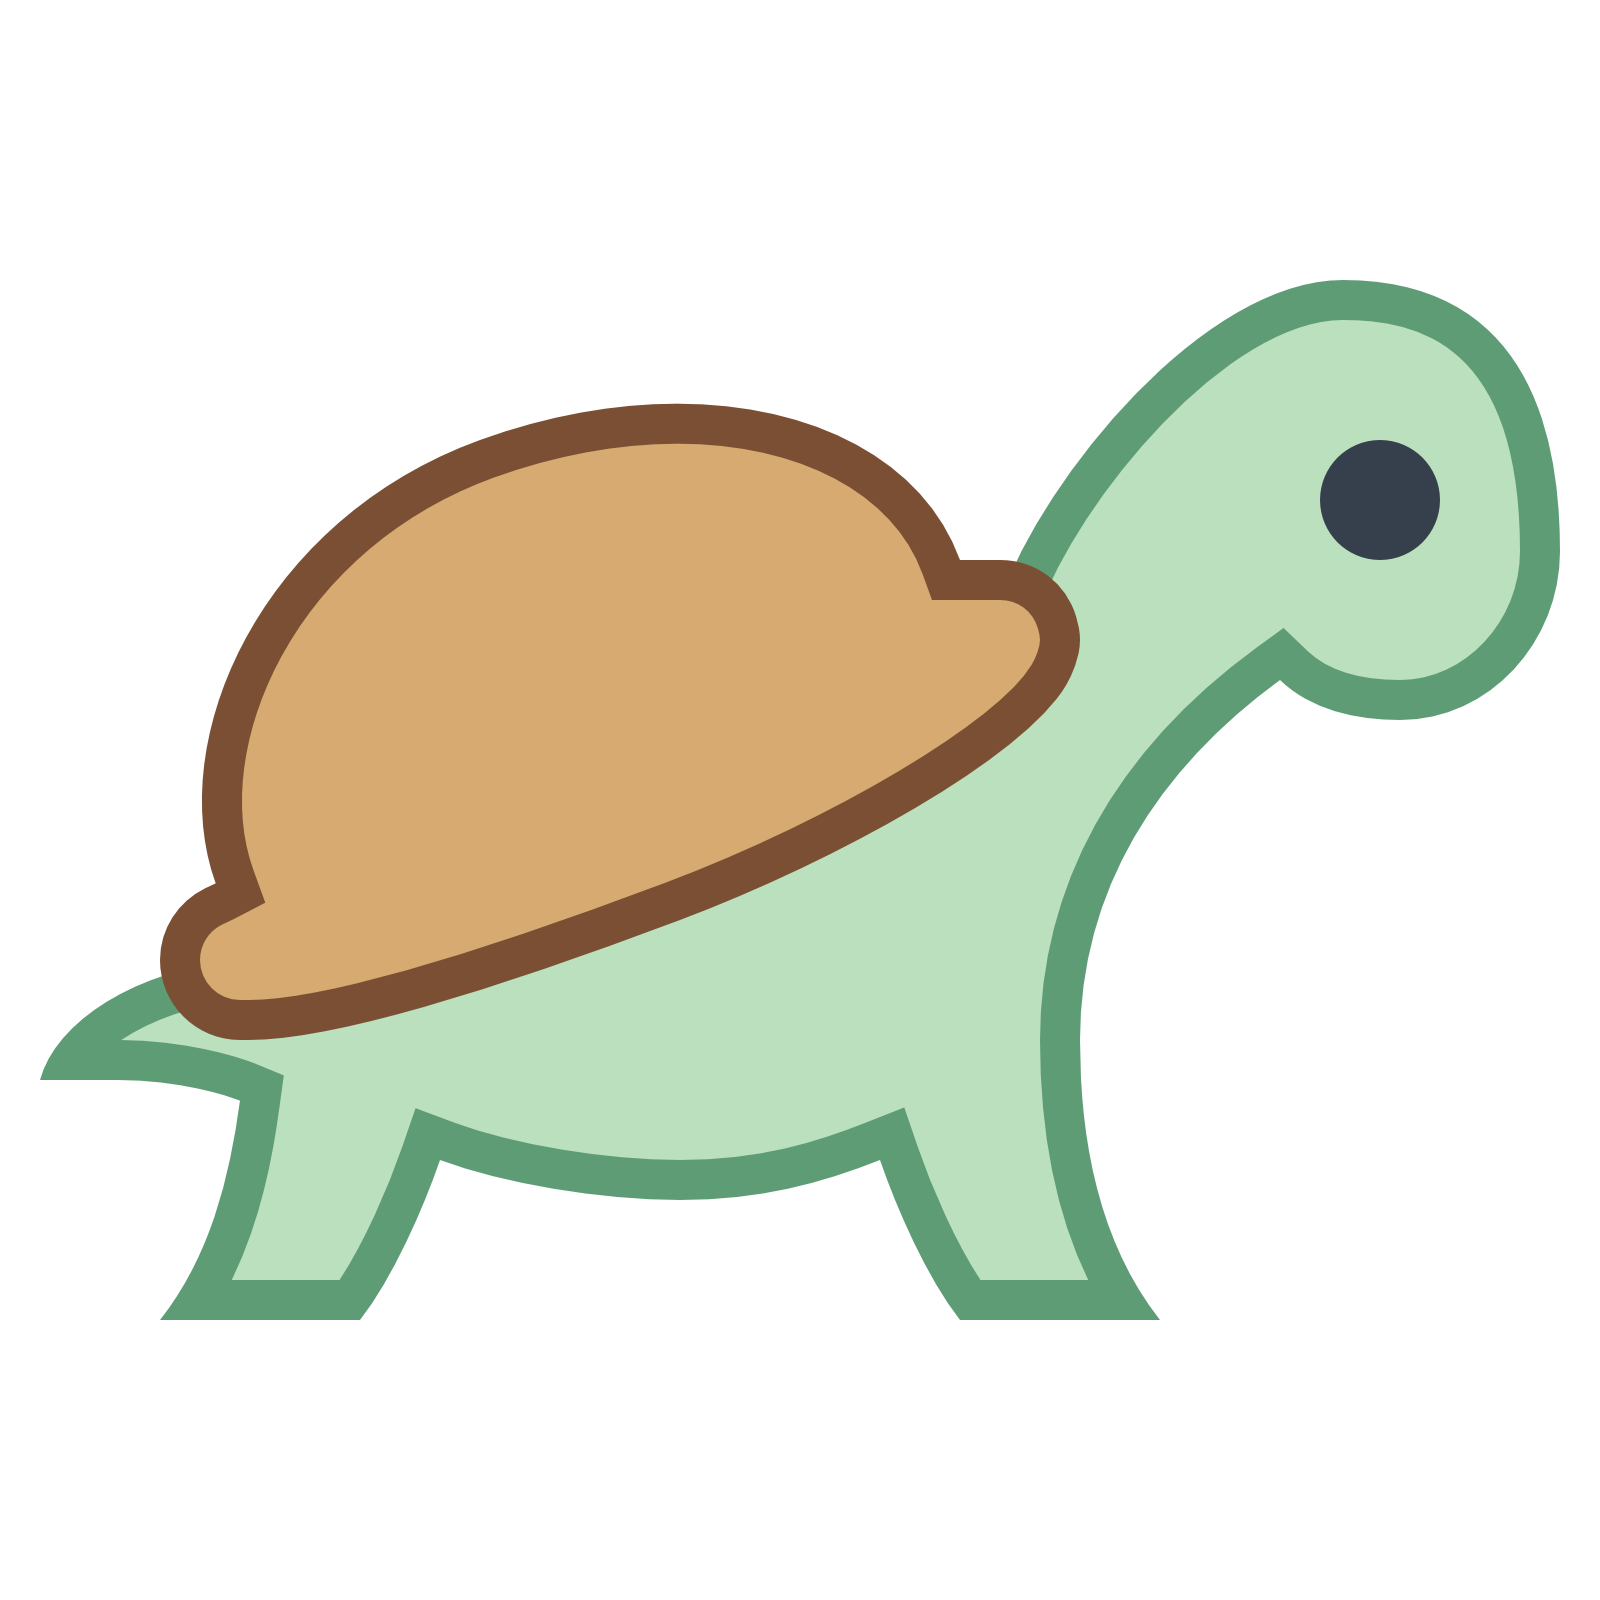 Slow clipart turtle head - Pencil and in color slow ...